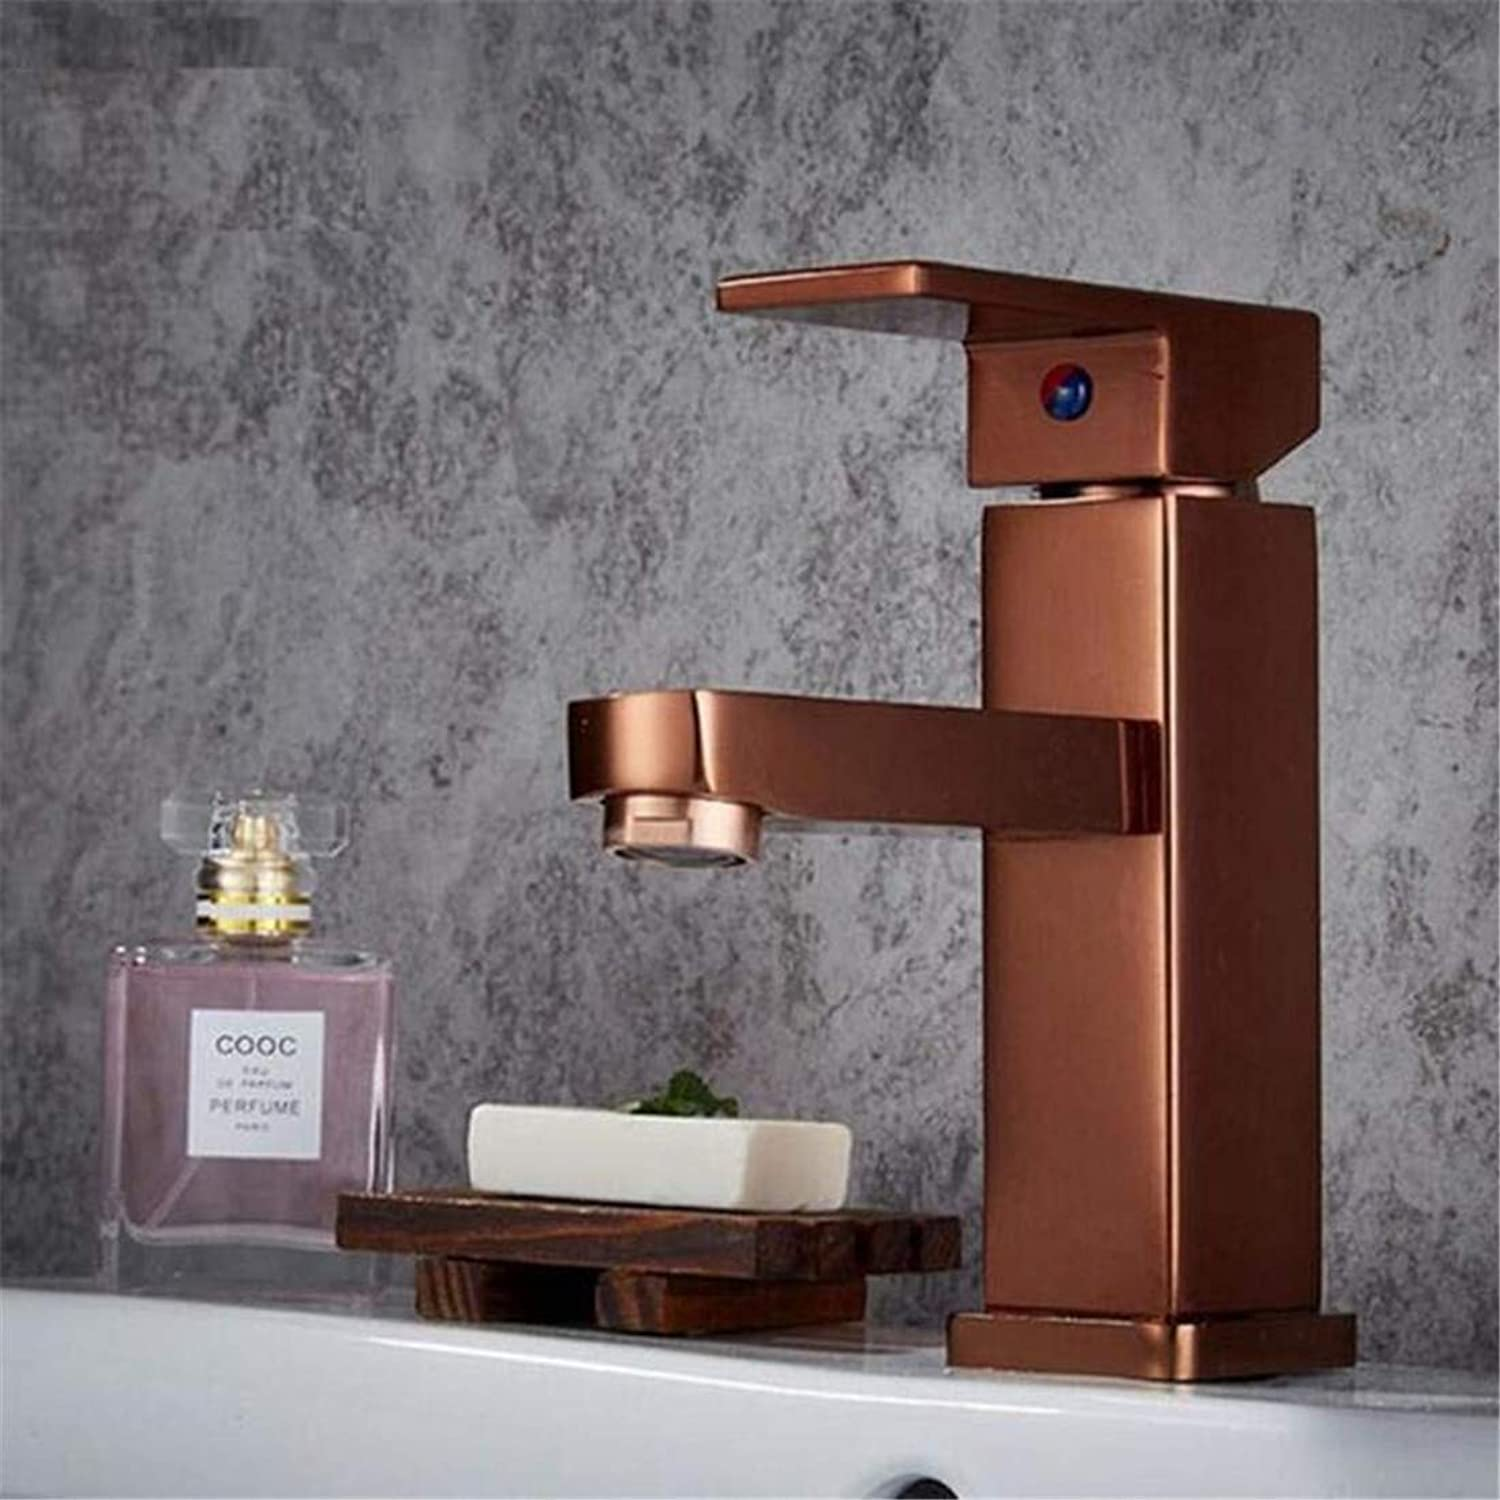 Faucet Vintage Plated Kitchen Bathroom Faucet Faucet Washbasin Mixer Single Handle Bathroom Basin Faucets Square Space Faucet Cold Hot Mixer Basin Sink Tap